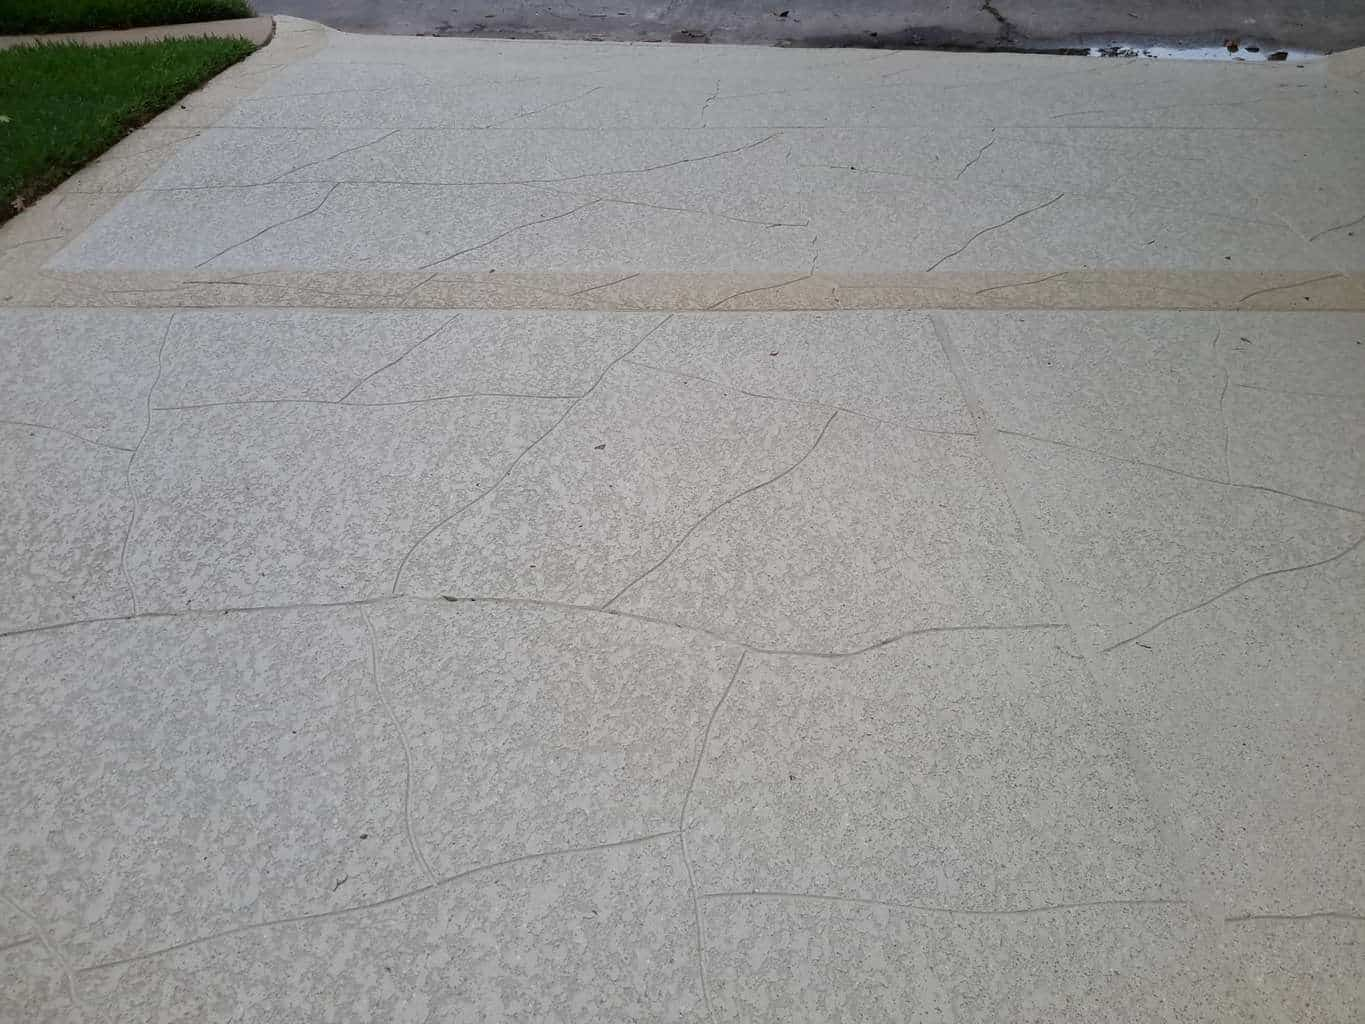 Residential Driveway using Classic Texture System